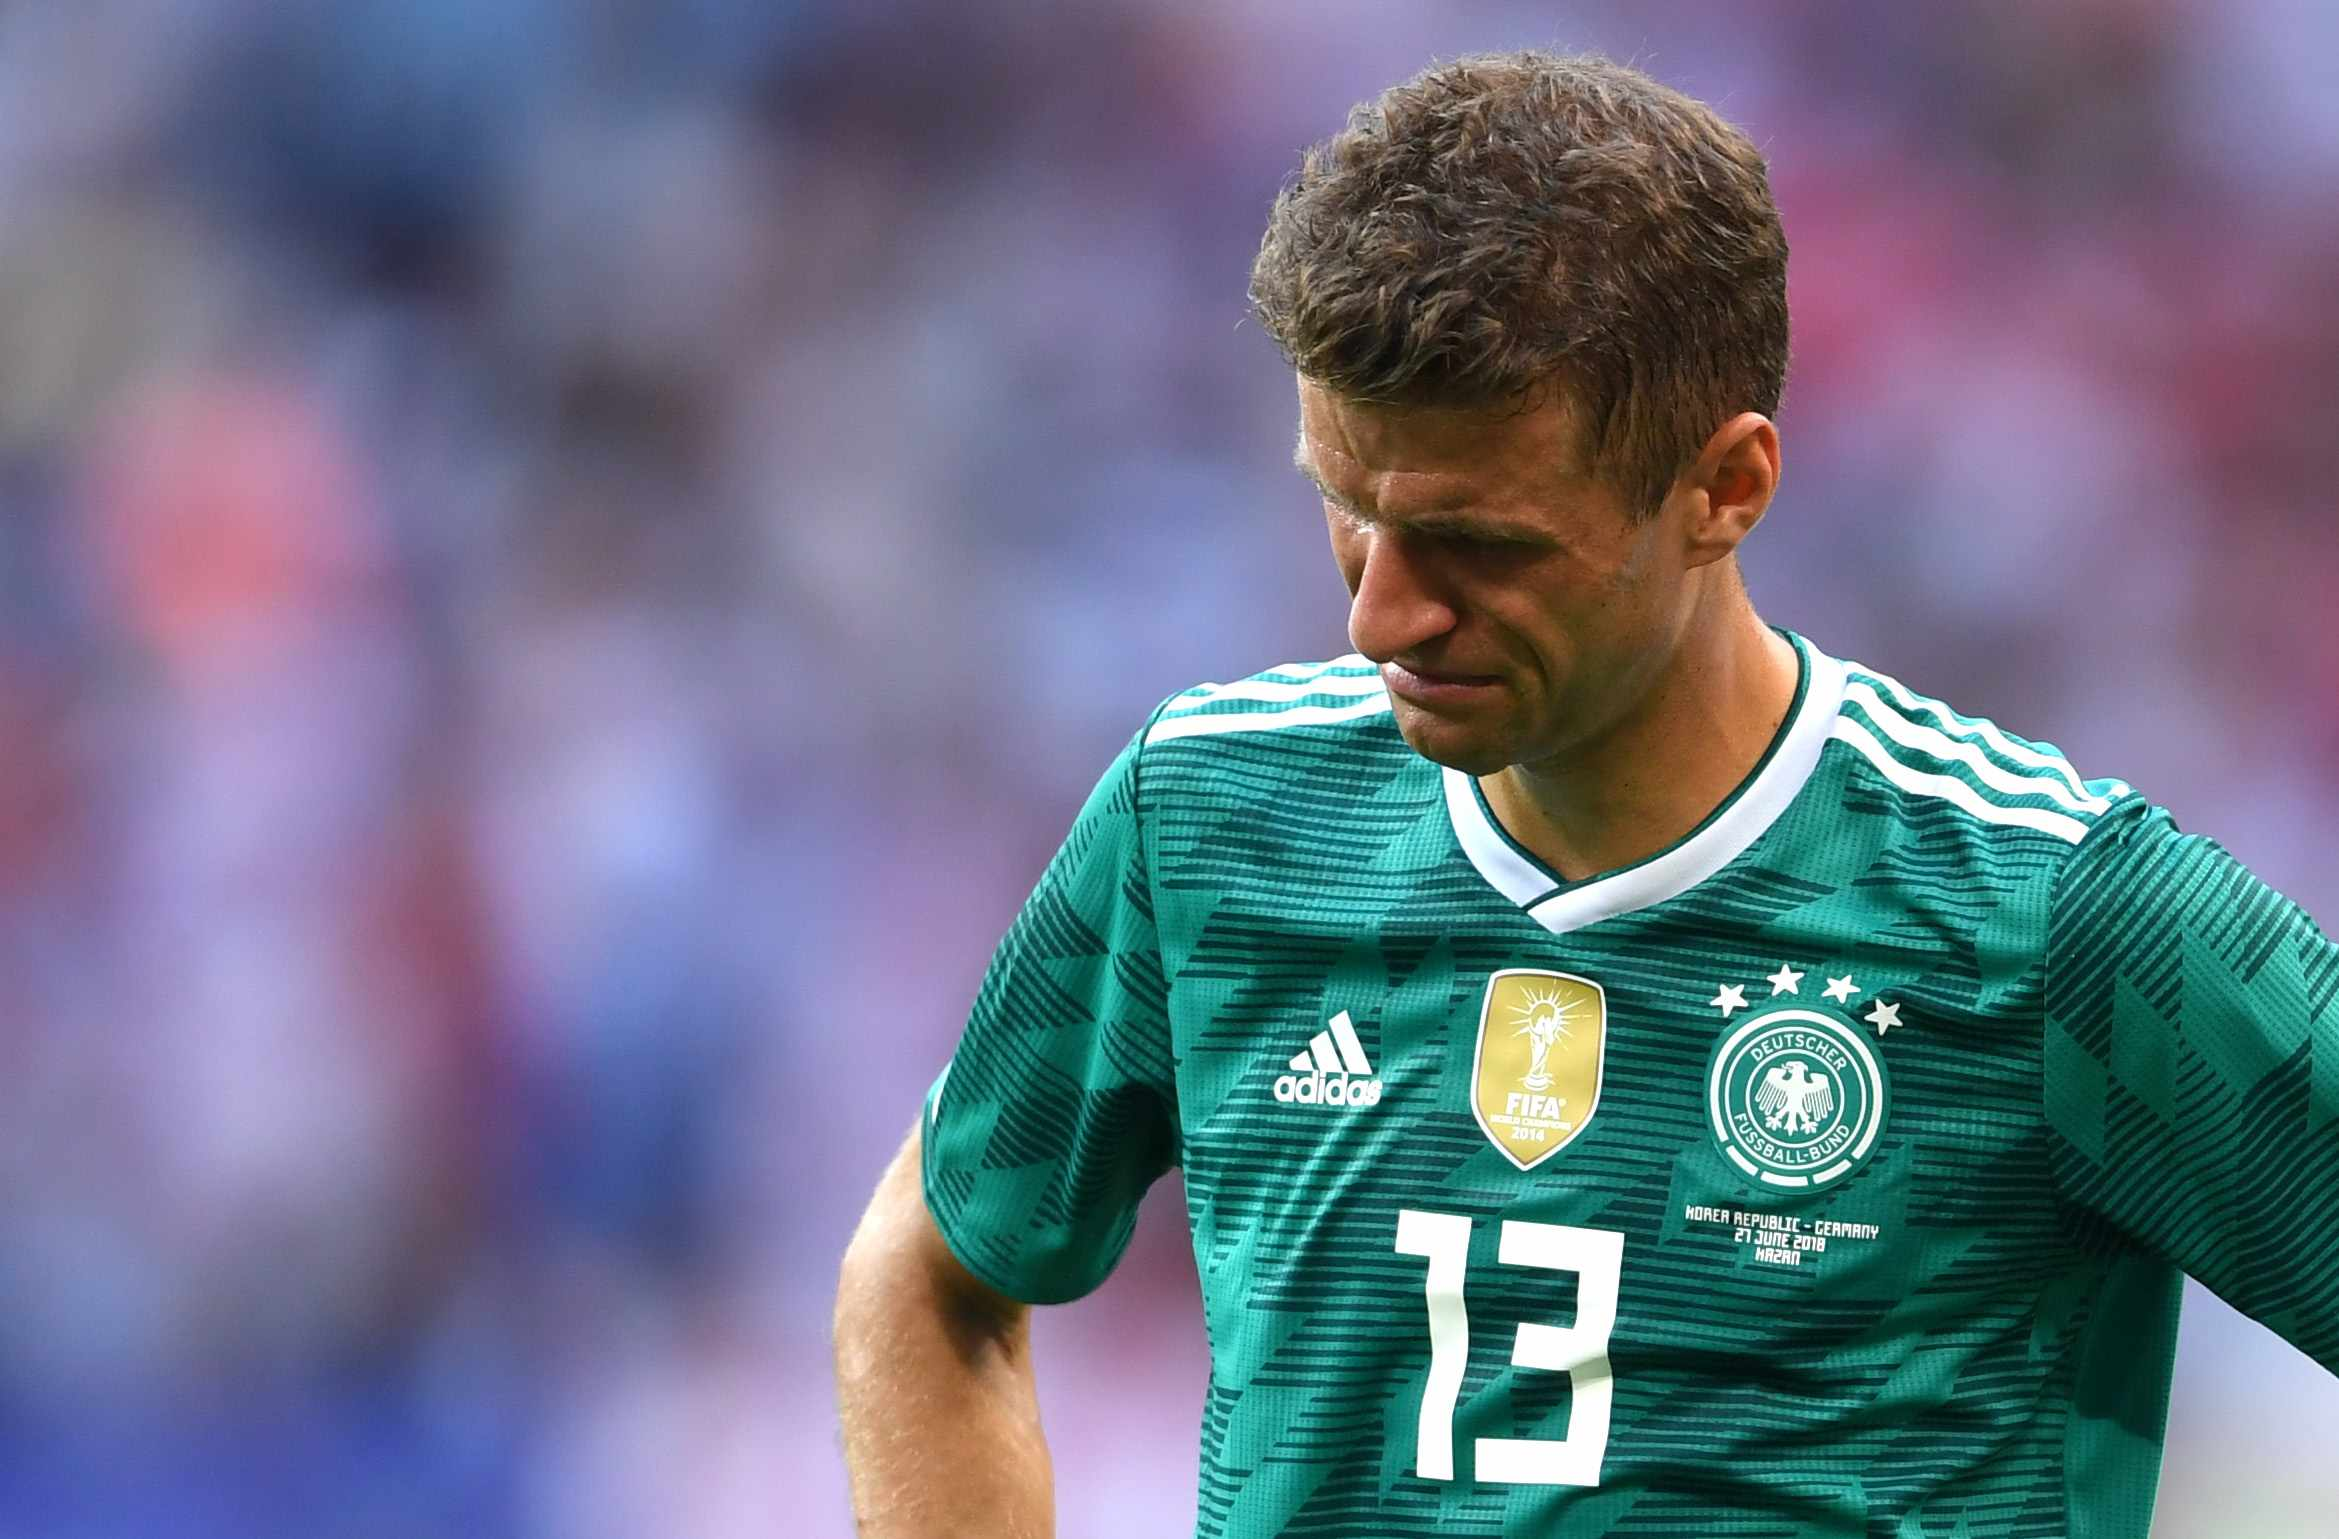 KAZAN, RUSSIA - JUNE 27:  Thomas Mueller of Germany looks dejected following his sides defeat in the 2018 FIFA World Cup Russia group F match between Korea Republic and Germany at Kazan Arena on June 27, 2018 in Kazan, Russia.  (Photo by Laurence Griffiths/Getty Images)  Getty, TL